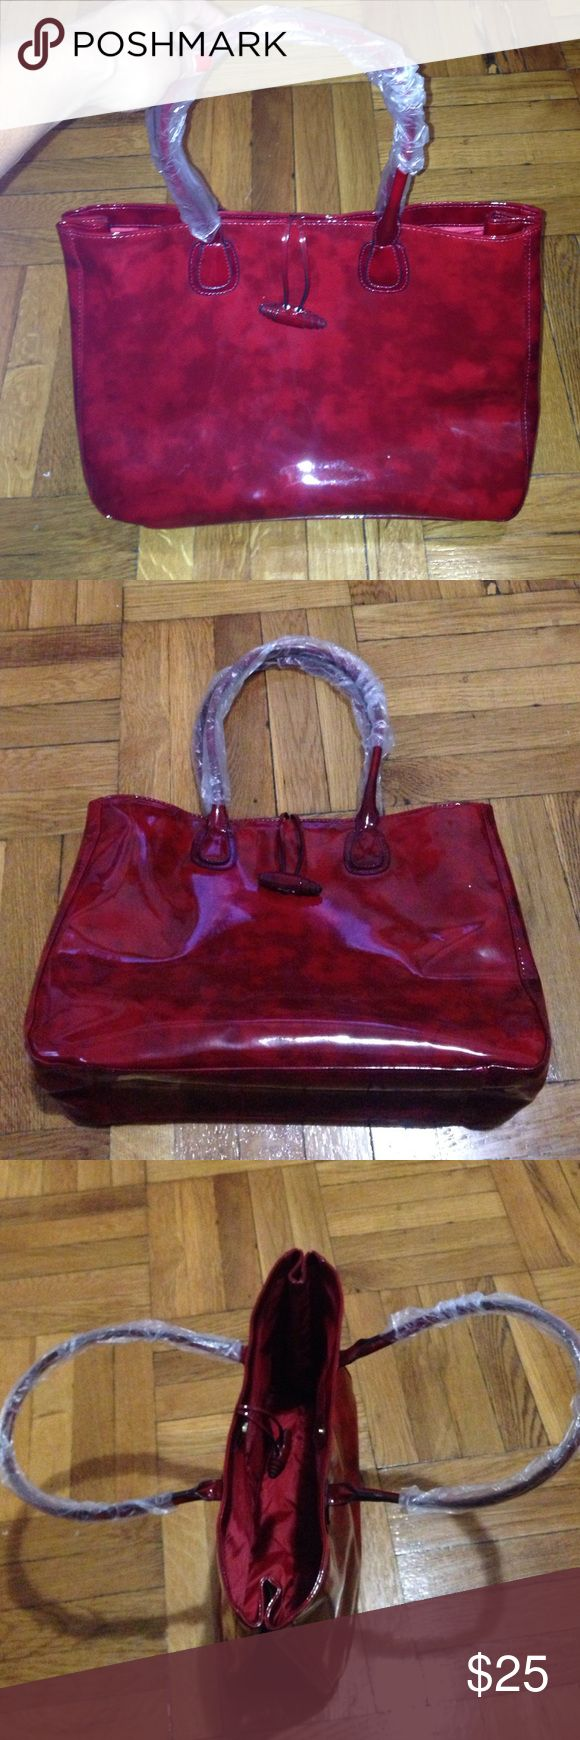 Elizabeth Arden red tote bag Elizabeth Arden red tote bag. Looks like patent leather material. It's big enough for a laptop. The perfect size bag for a woman in the go...can easily go from day to night. Elizabeth Arden Bags Totes